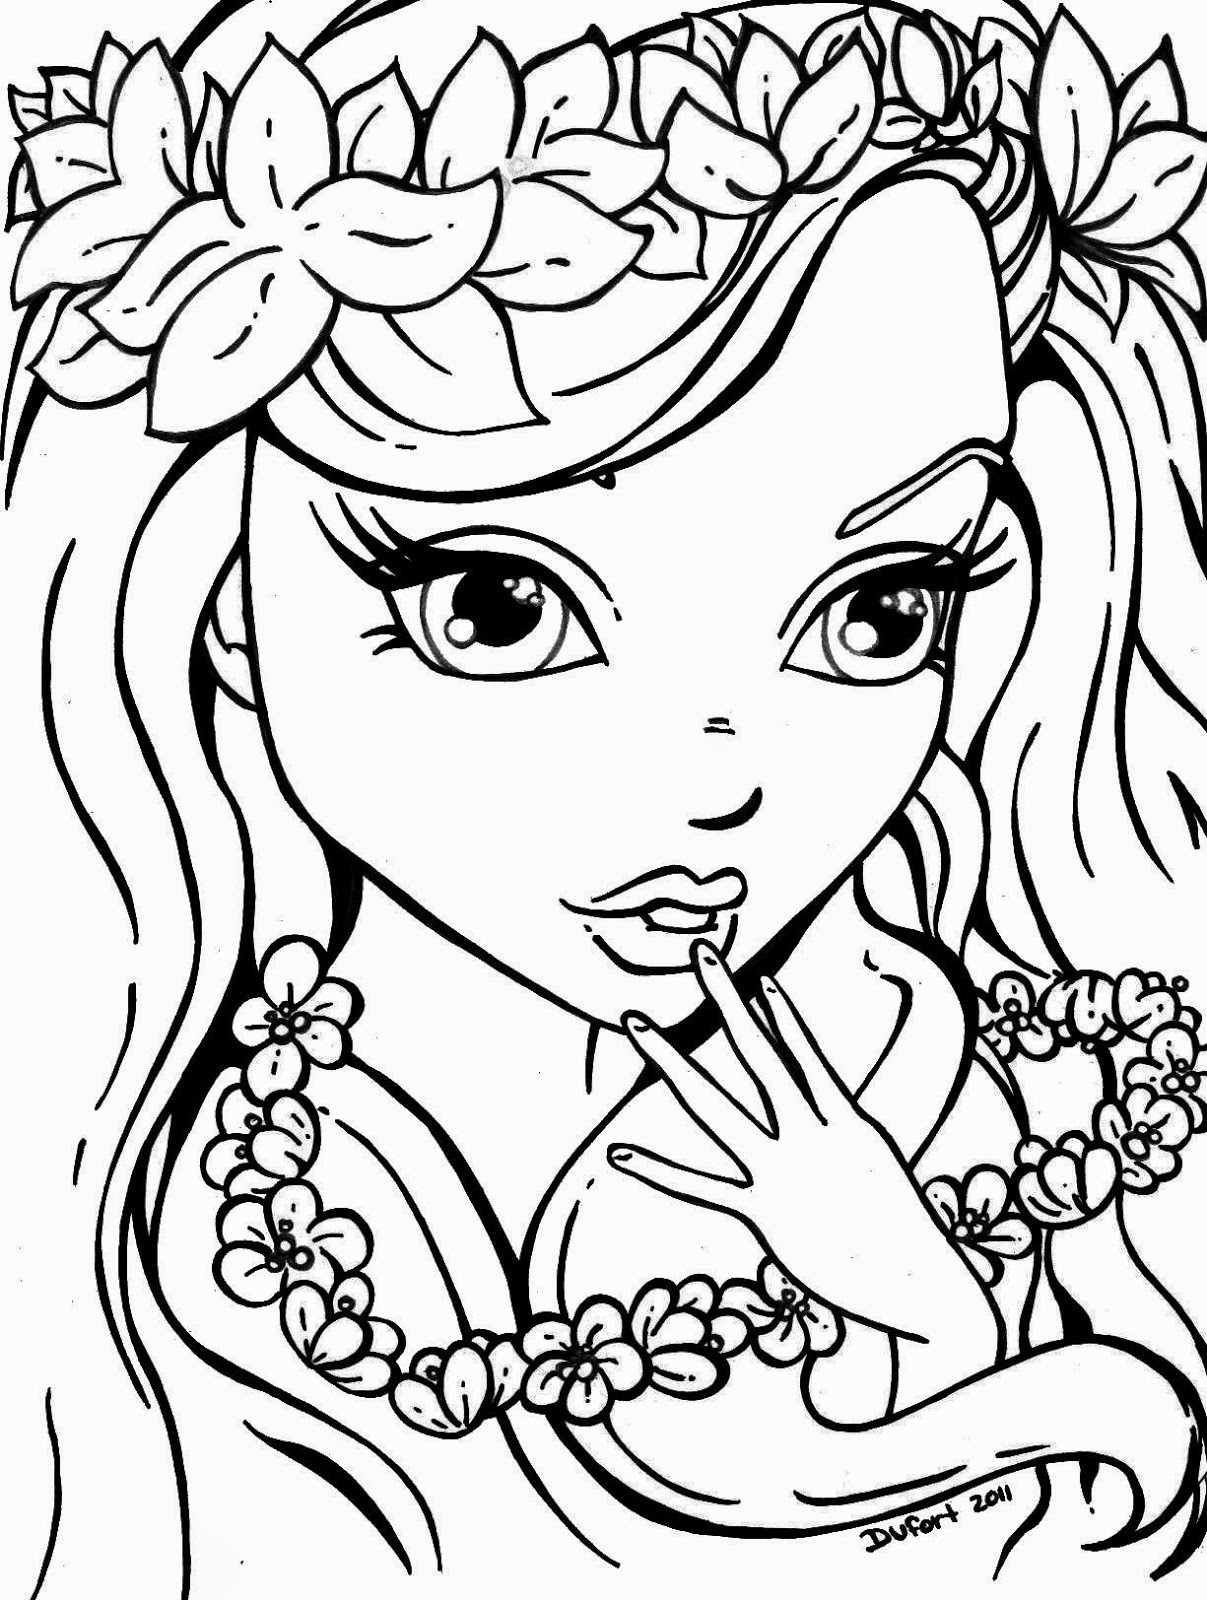 Printable Coloring Pages For Girls 10 And Up  Free Coloring Pages For Girls Cute Image 5 Gianfreda